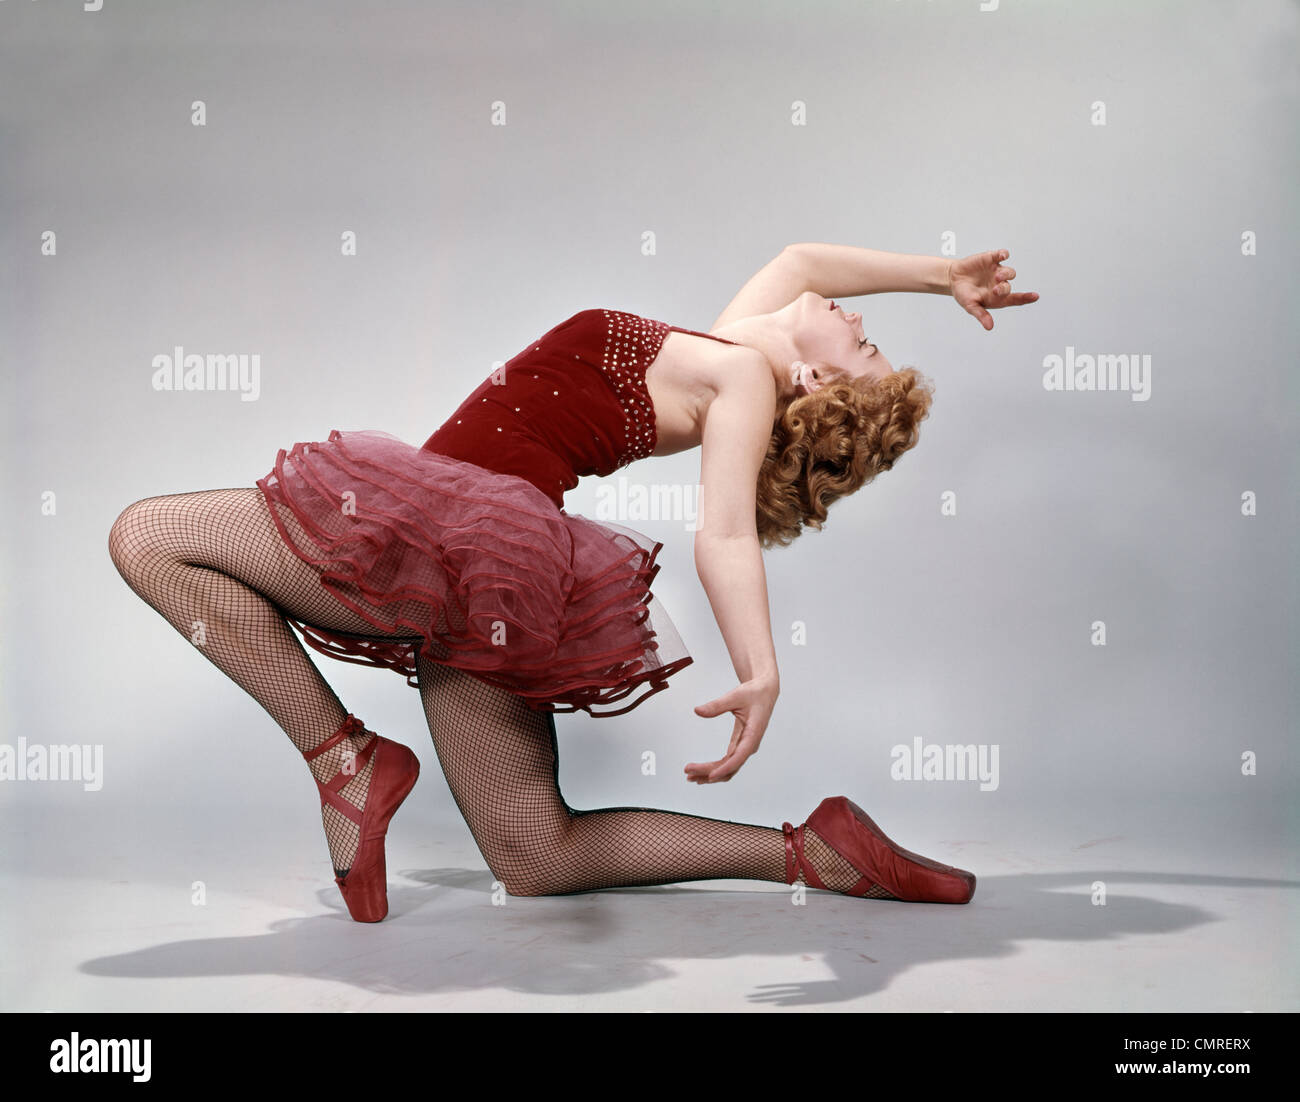 1960s TEEN GIRL LAYBACK POSITION RED VELVET COSTUME PINK NET TUTU BALLET ATTITUDE - Stock Image